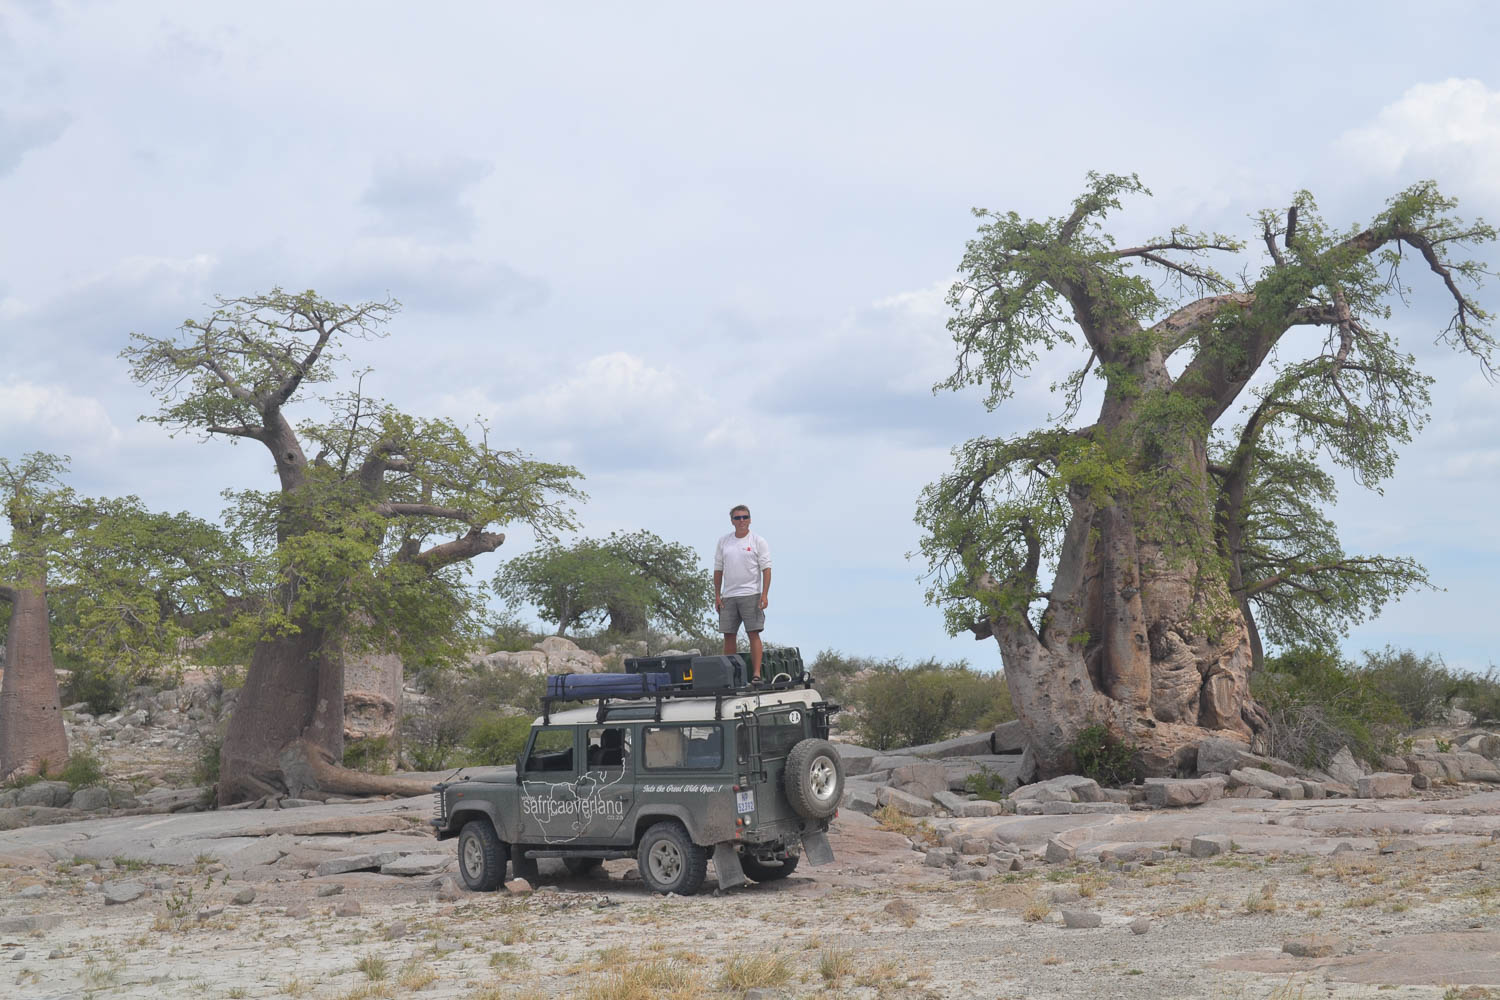 Kubu Island in Makgadikgadi Pans with South Africa Overland 4x4 Tours